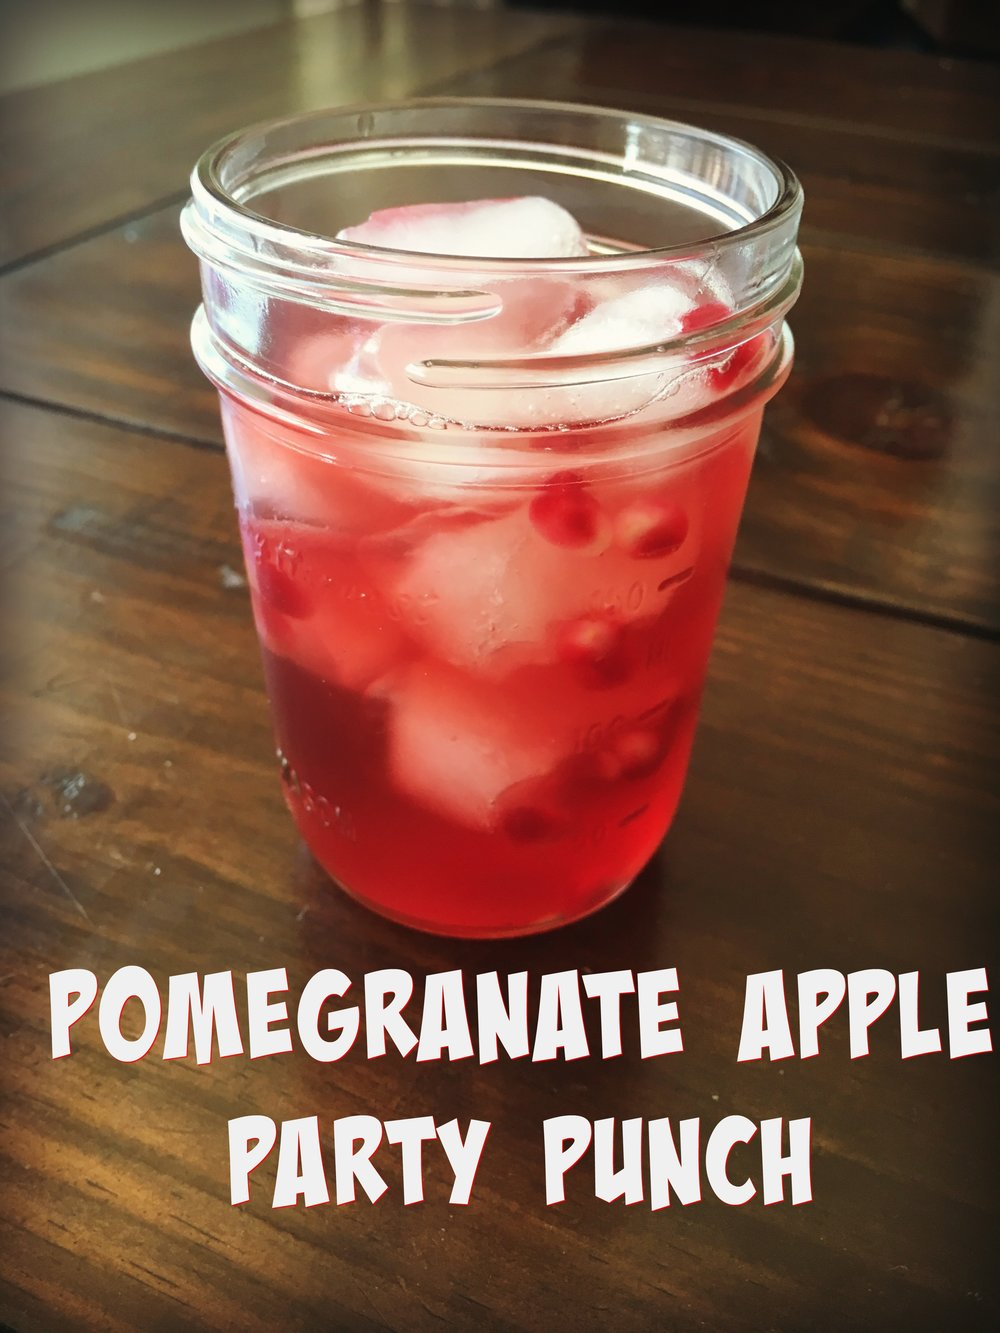 Pomegranate Apple Party Punch .jpg